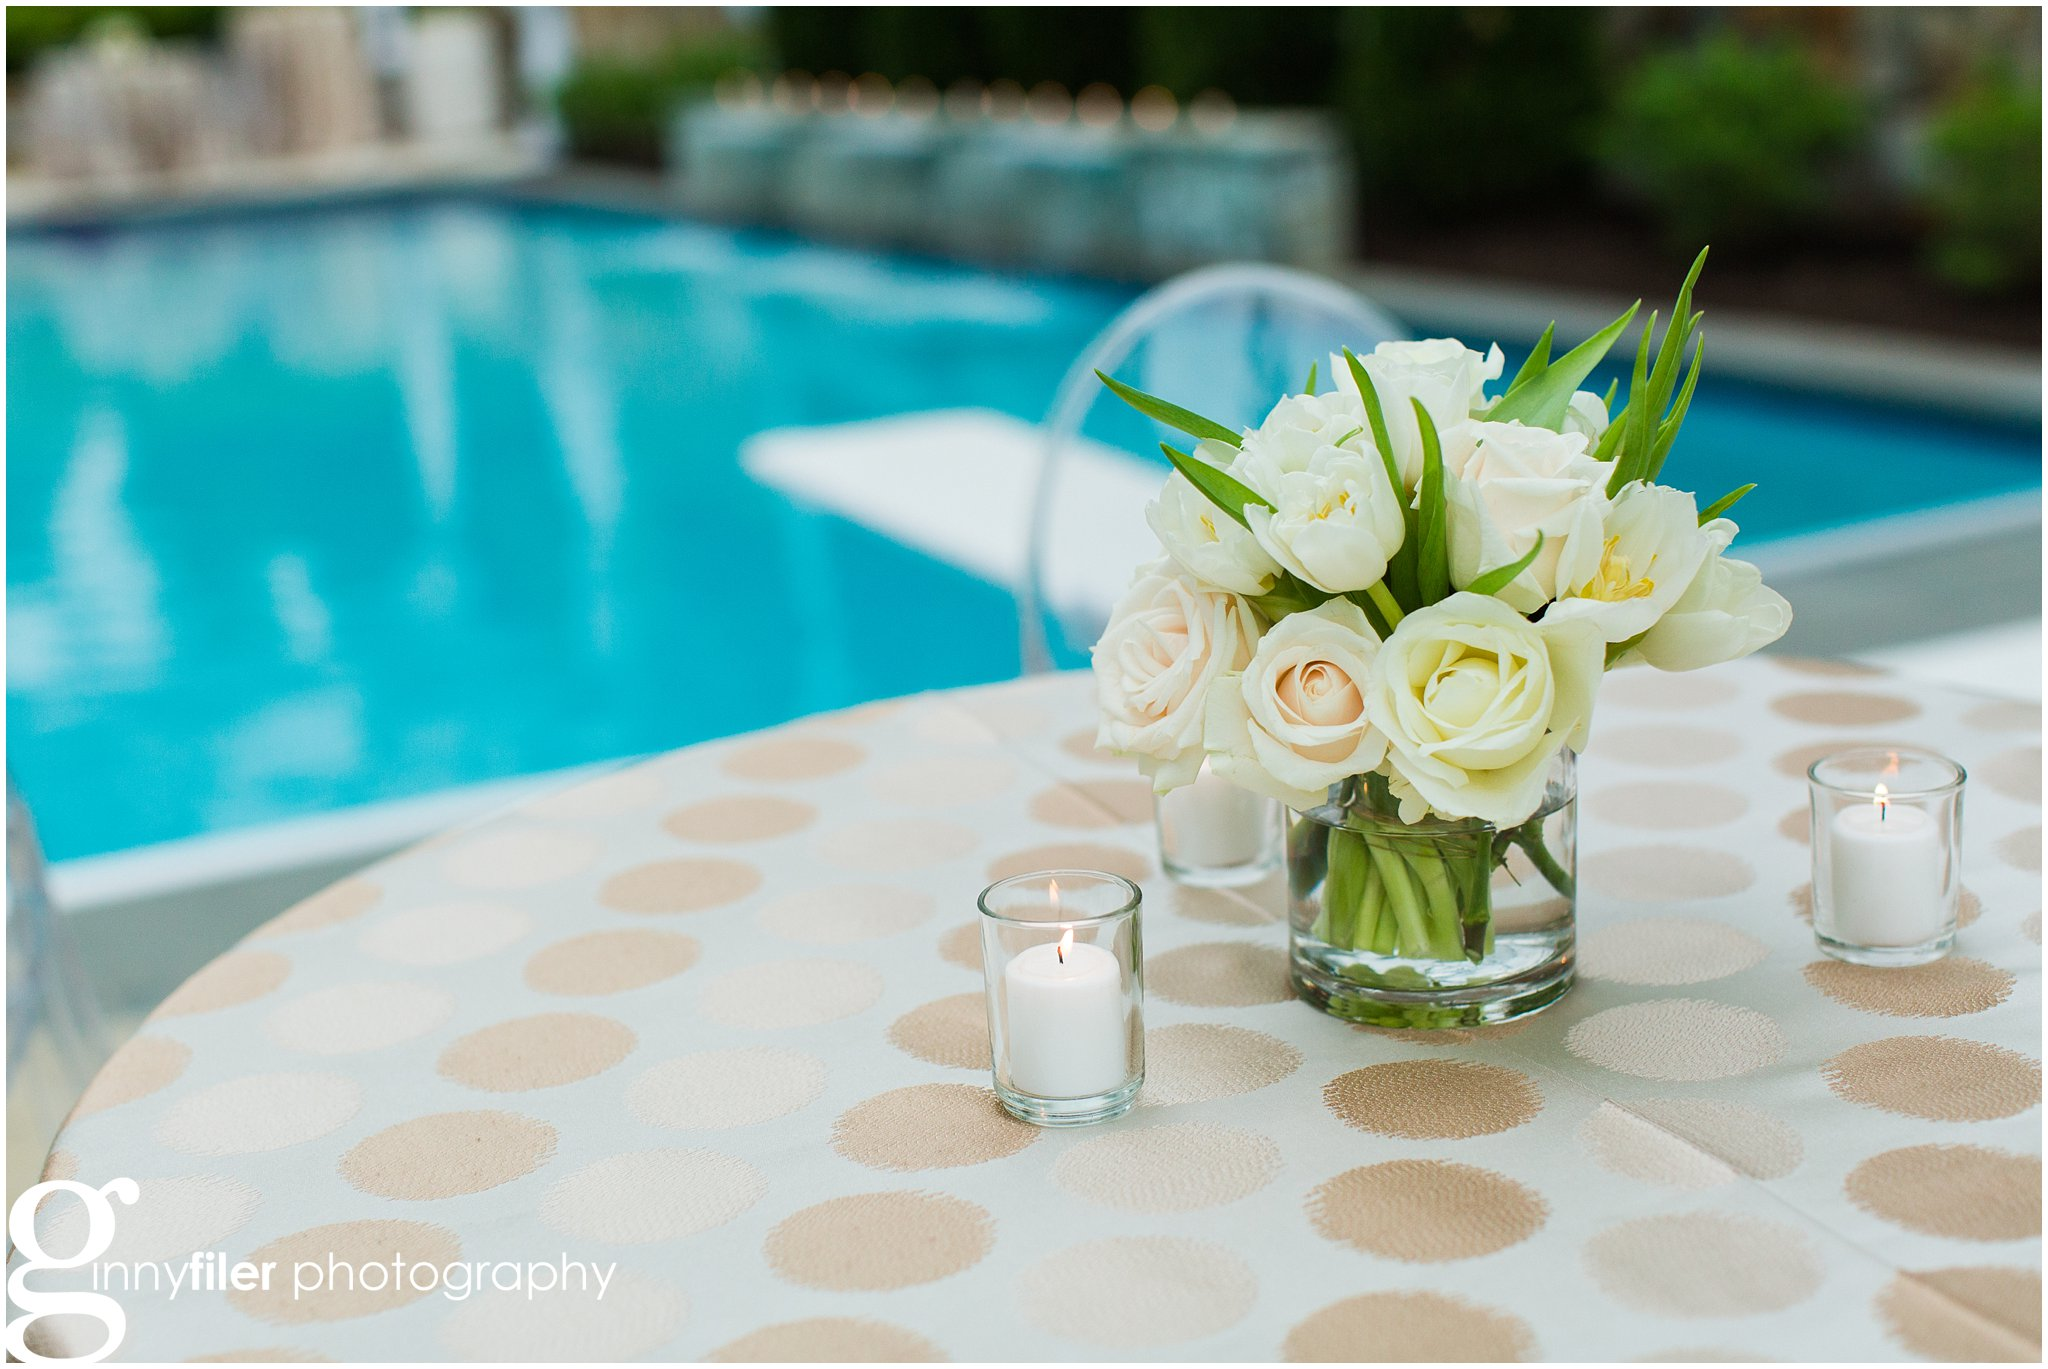 event_photography_party_0015.jpg